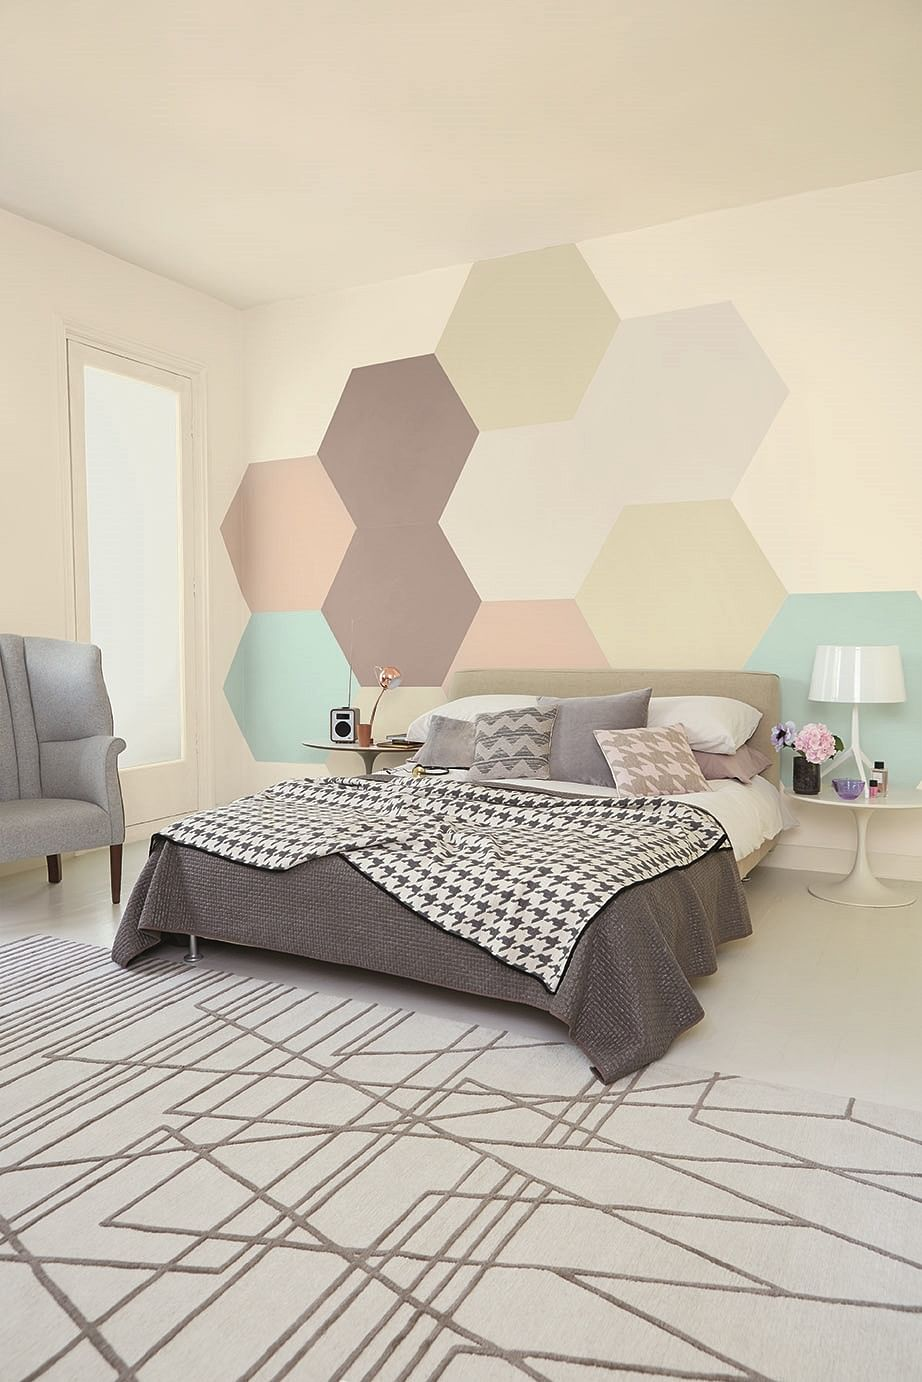 Dress Up Your Wall With These 7 Paint Patterns